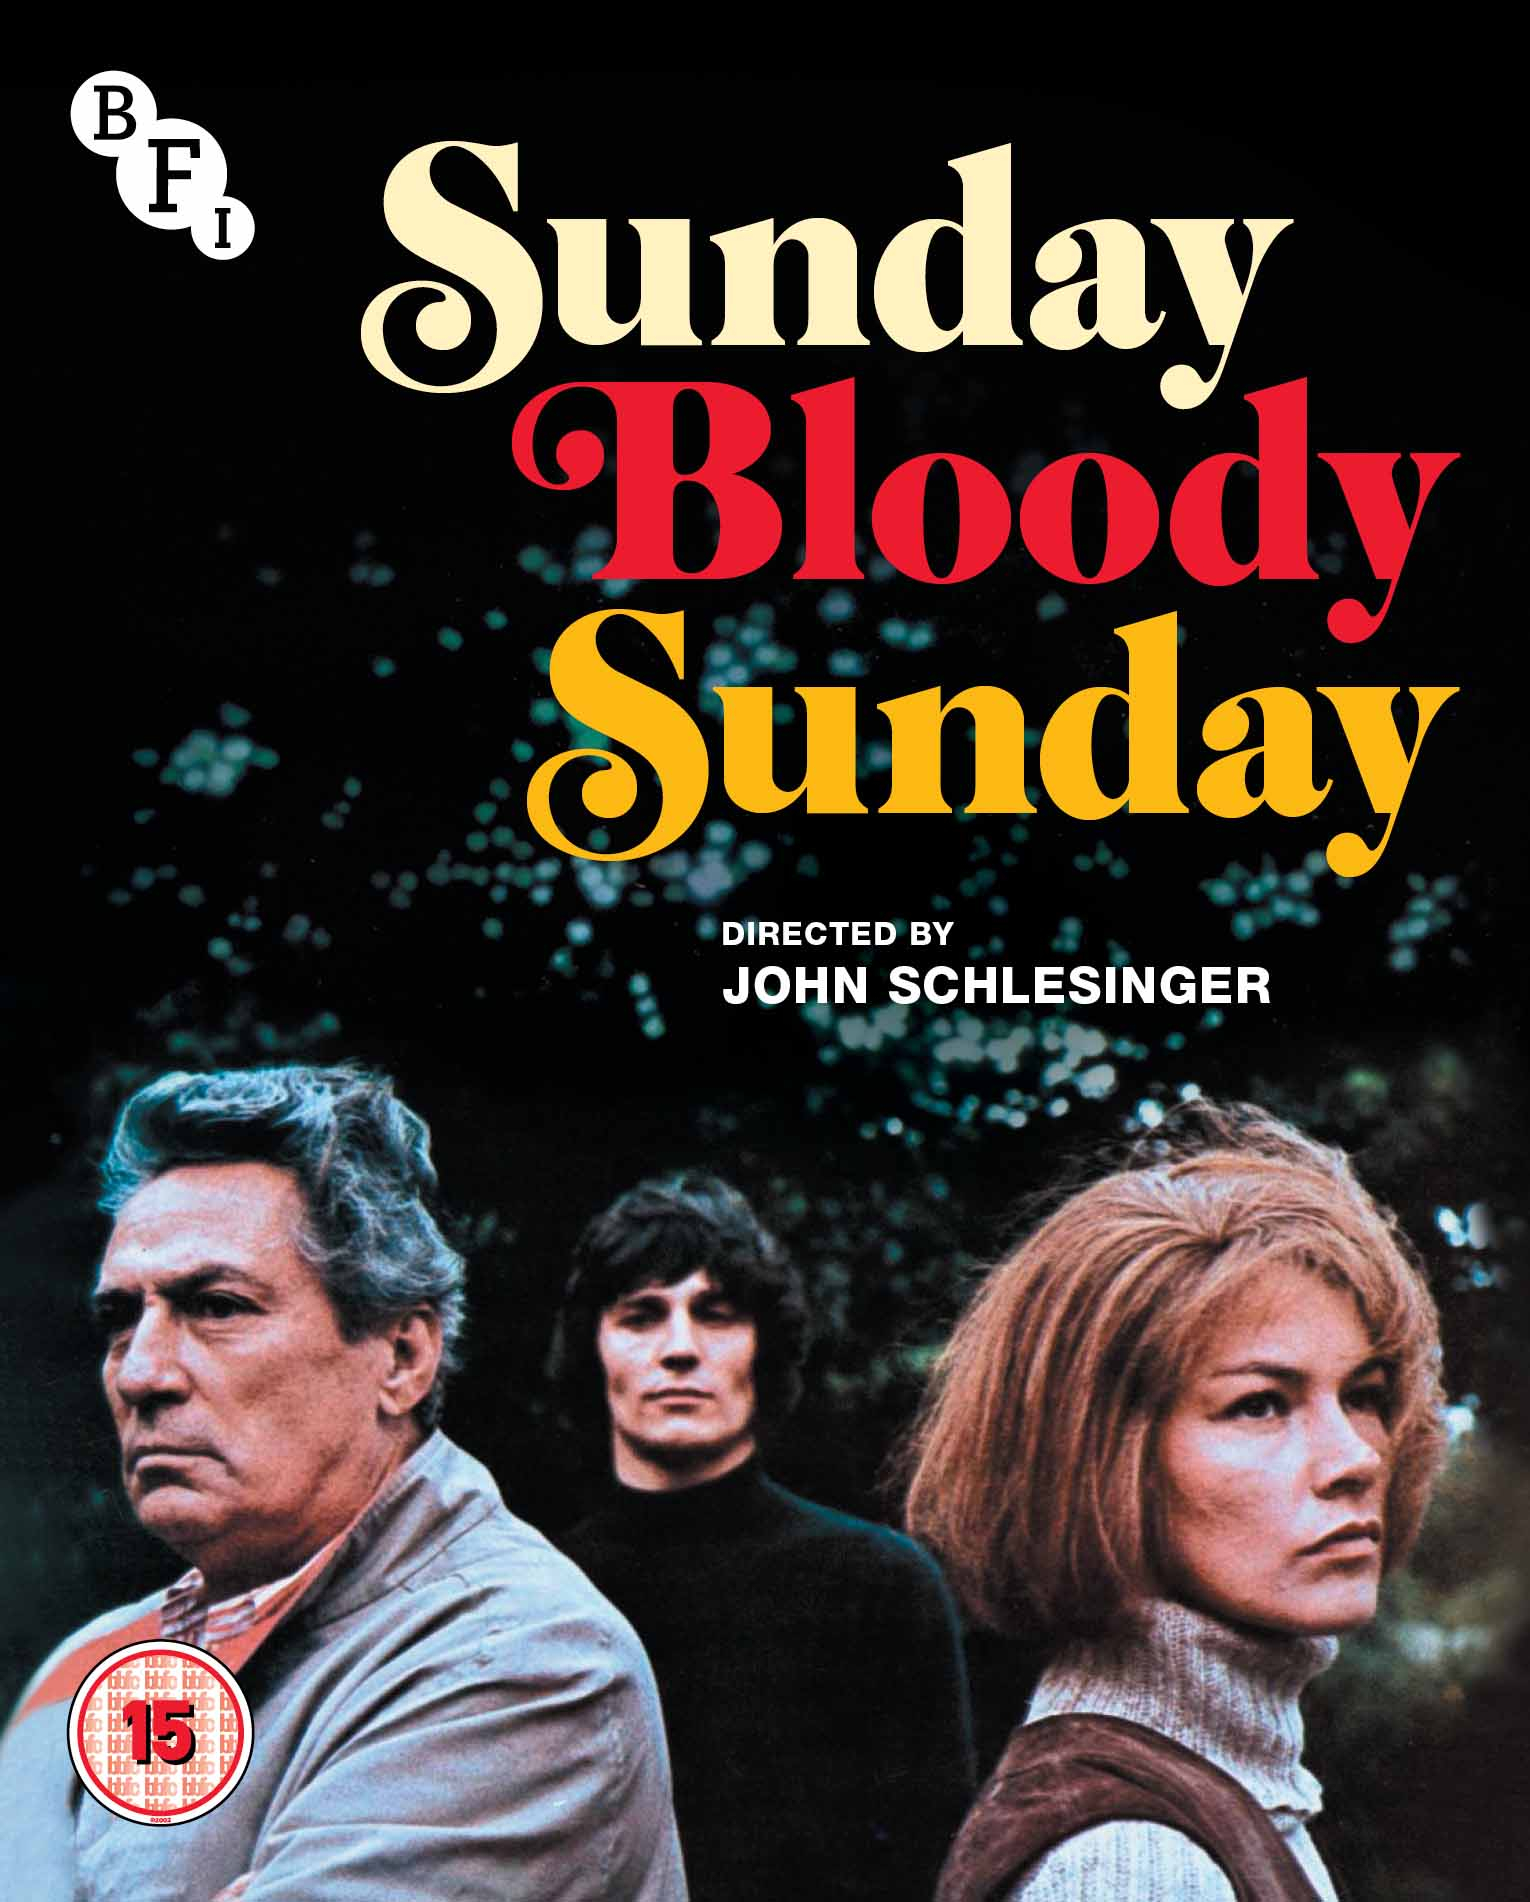 Buy PRE-ORDER Sunday Bloody Sunday (Blu-ray) - Shop